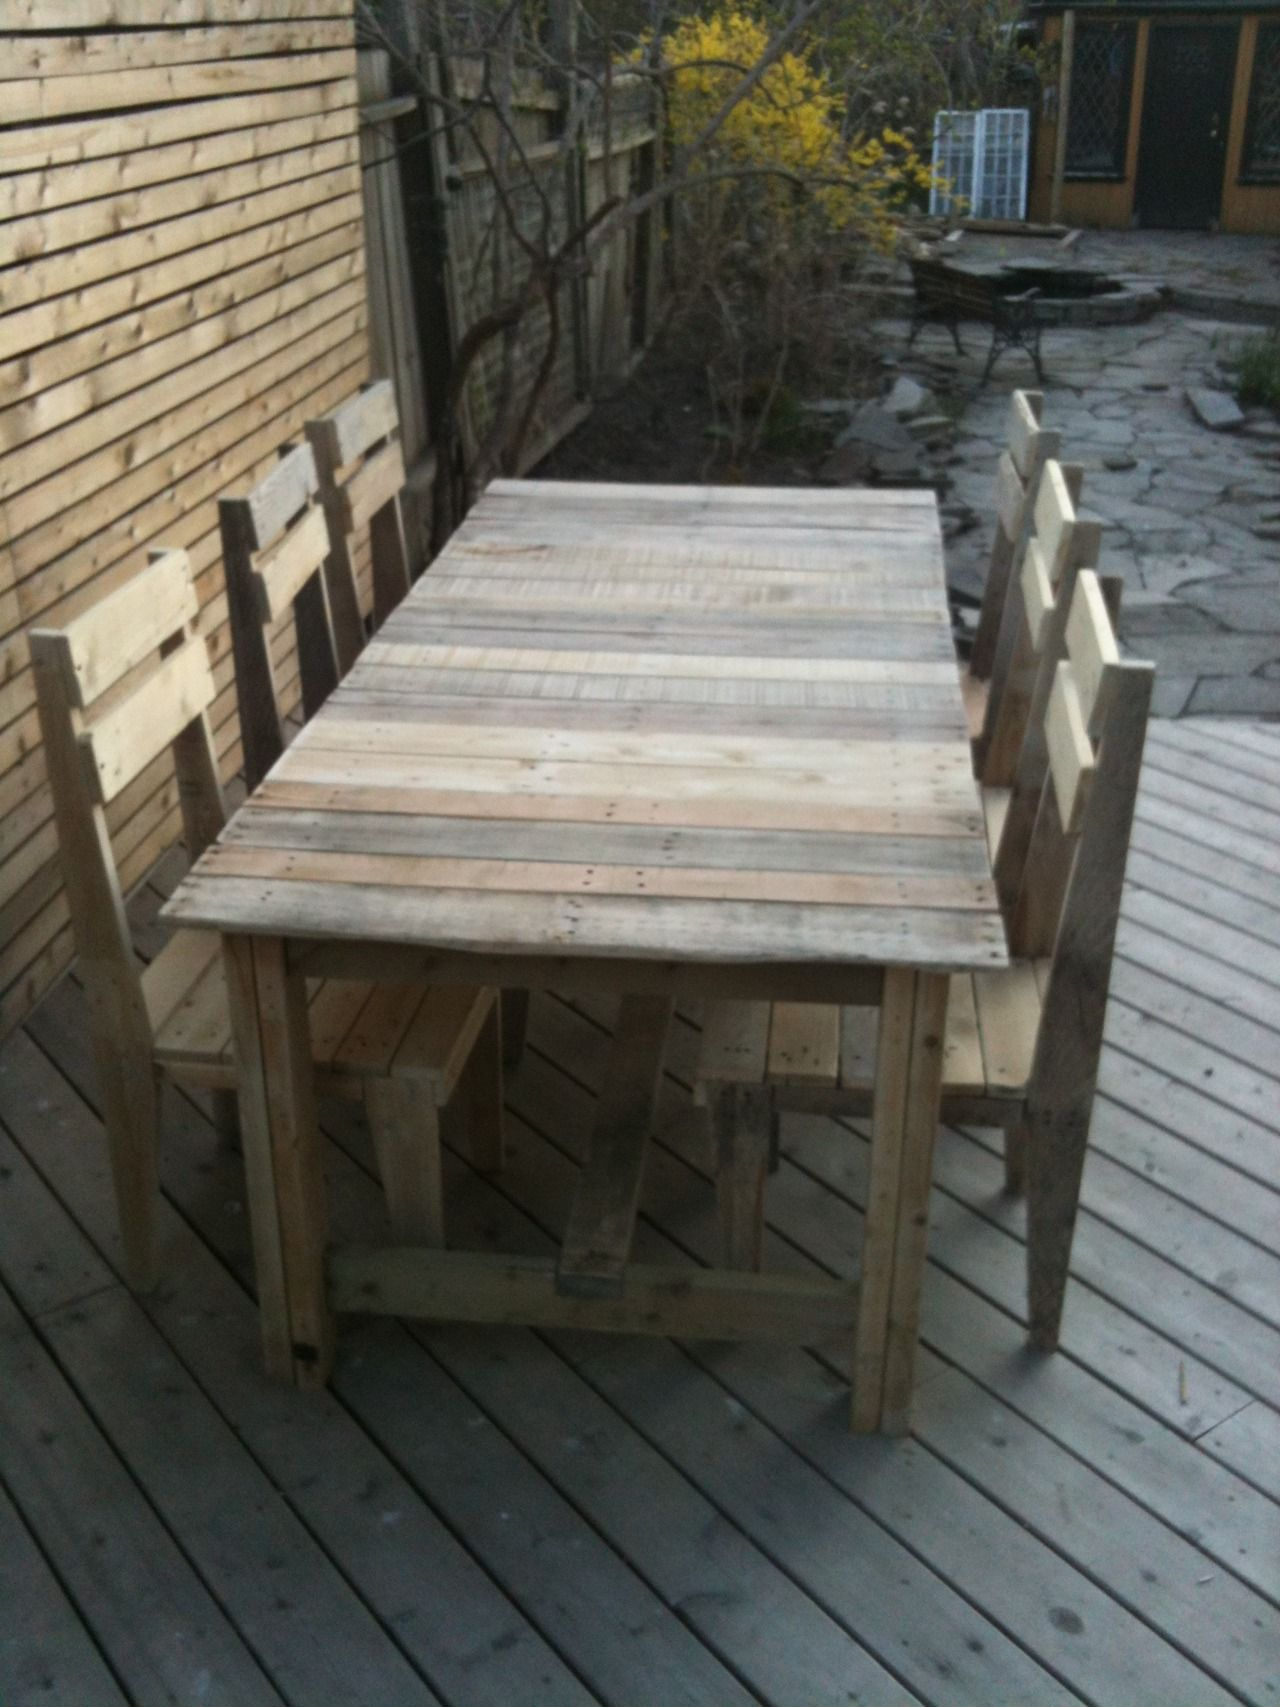 Backyard Dining Pallet Table: After completing the chairs, I moved on to the table. This was pretty easy to make, as I found some excellent drawings and step by step instructions on how to build it at...